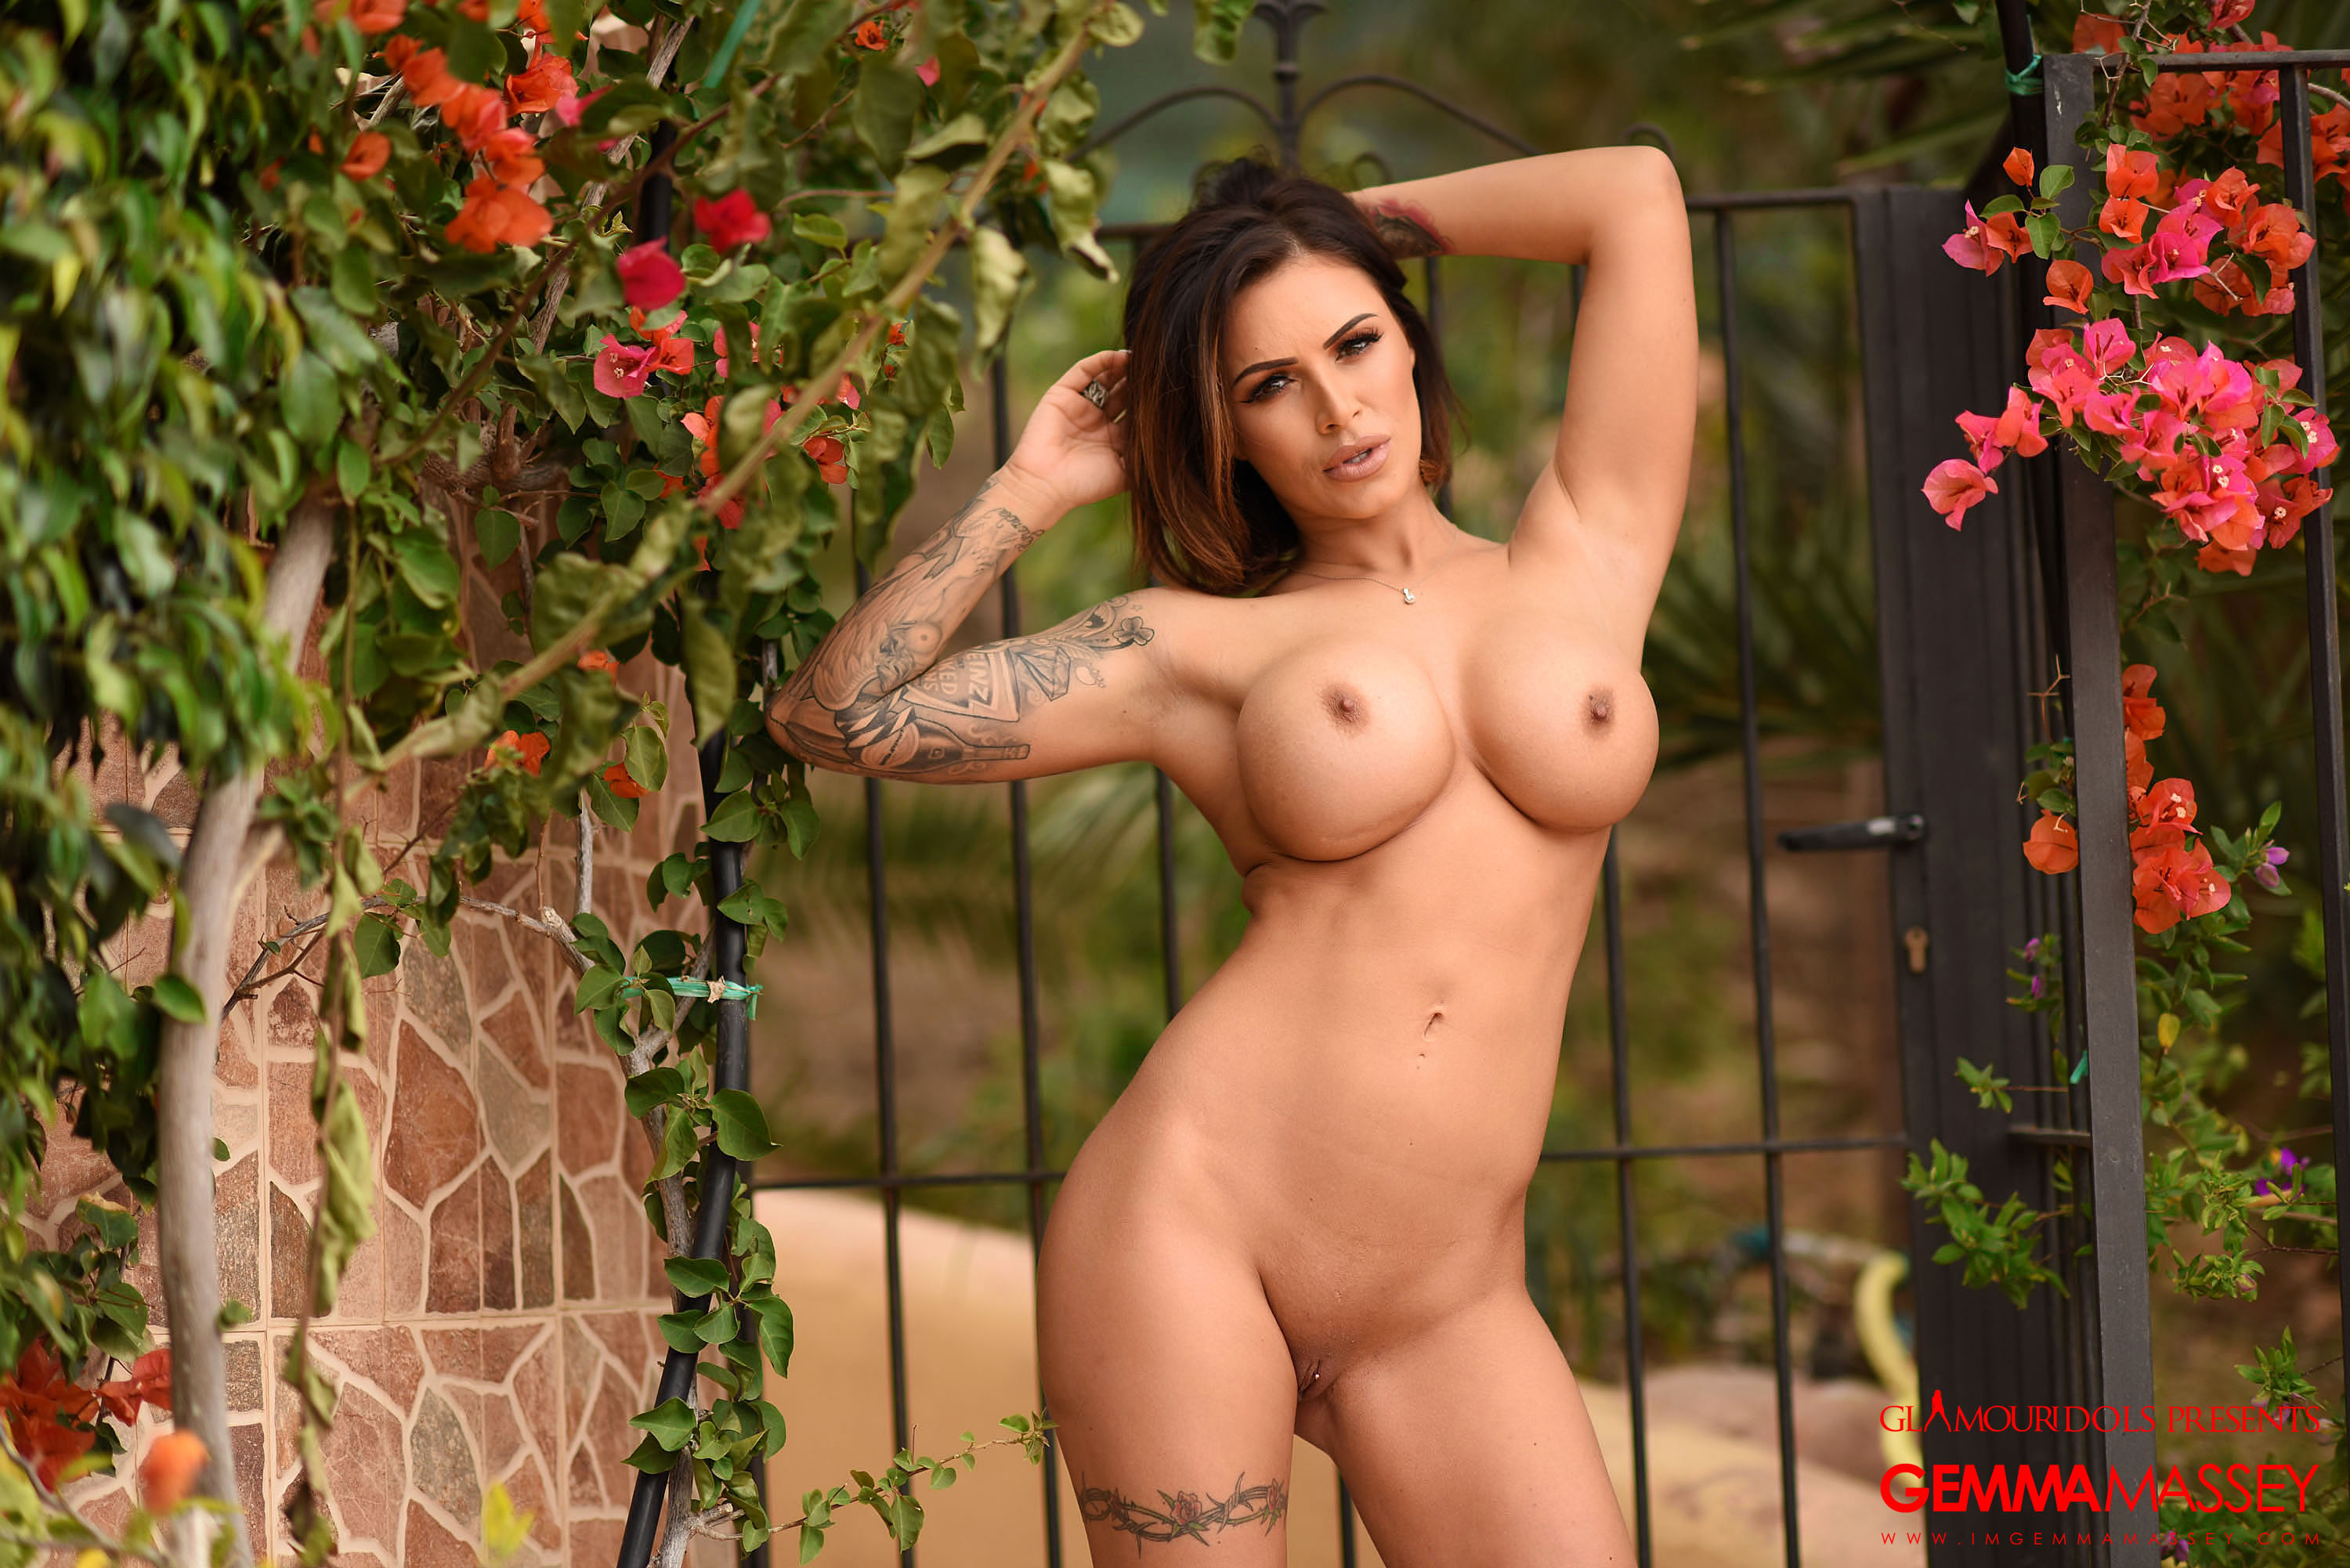 Gemma Massey gets naked outdoors